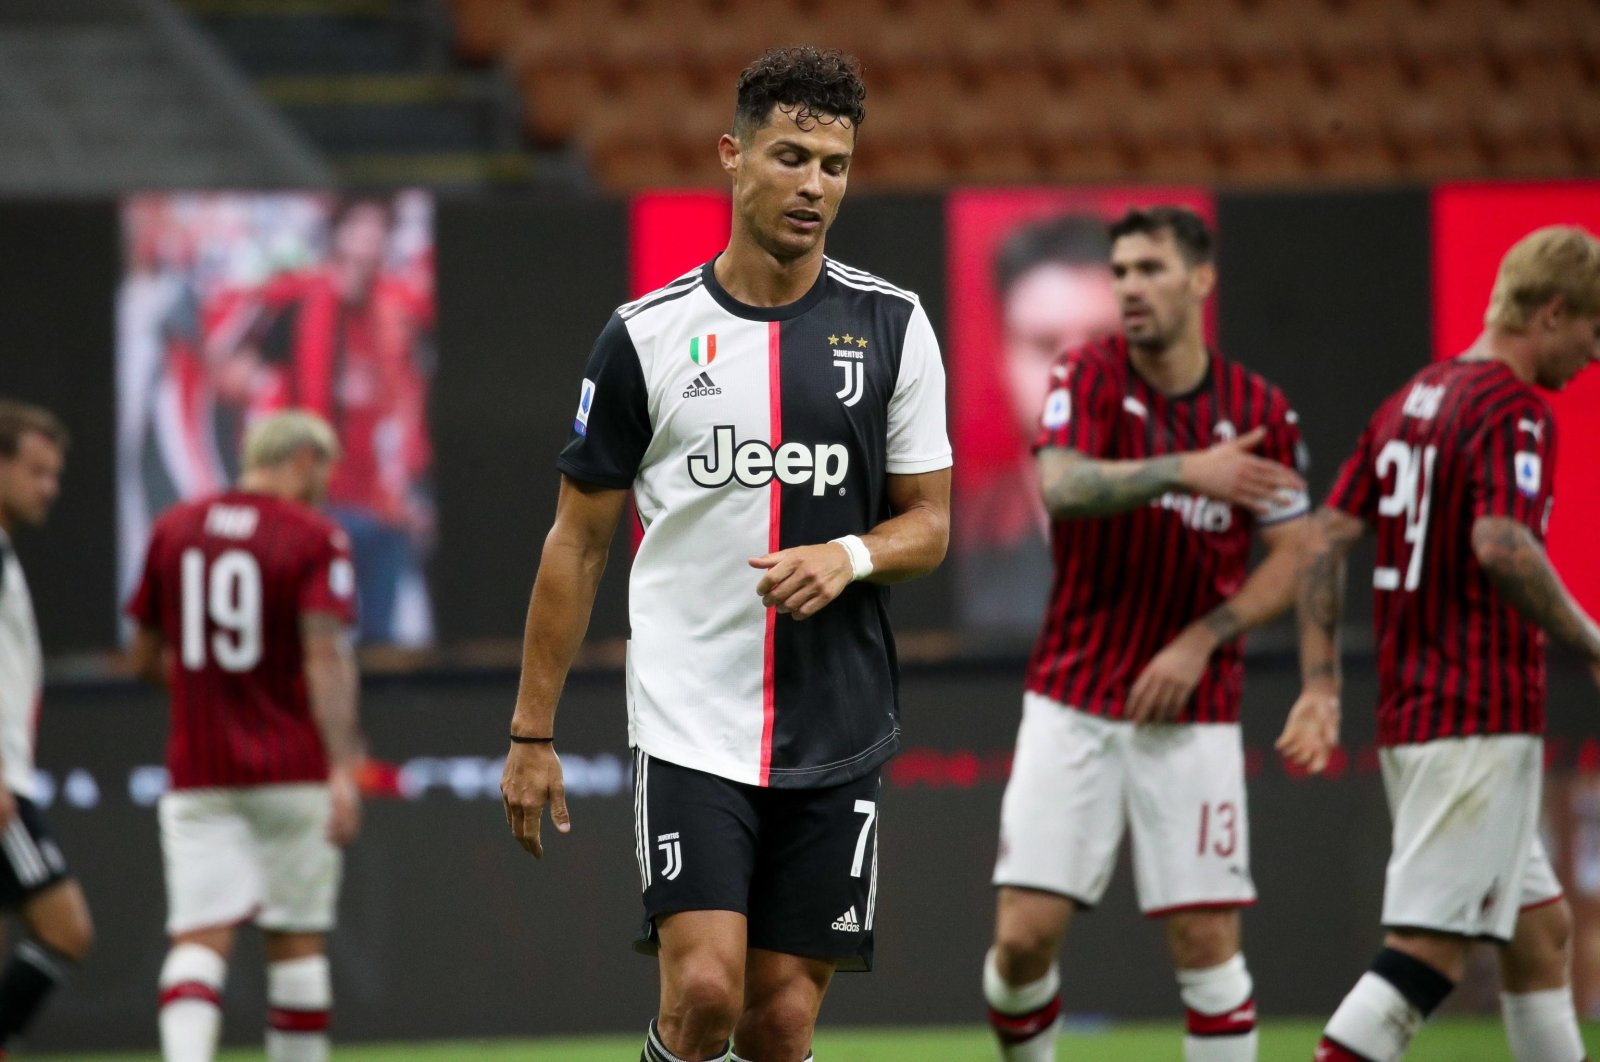 Juventus' Cristiano Ronaldo looks dejected during the Serie A match against AC Milan in Milan, Italy, July 7, 2020. (EPA Photo)